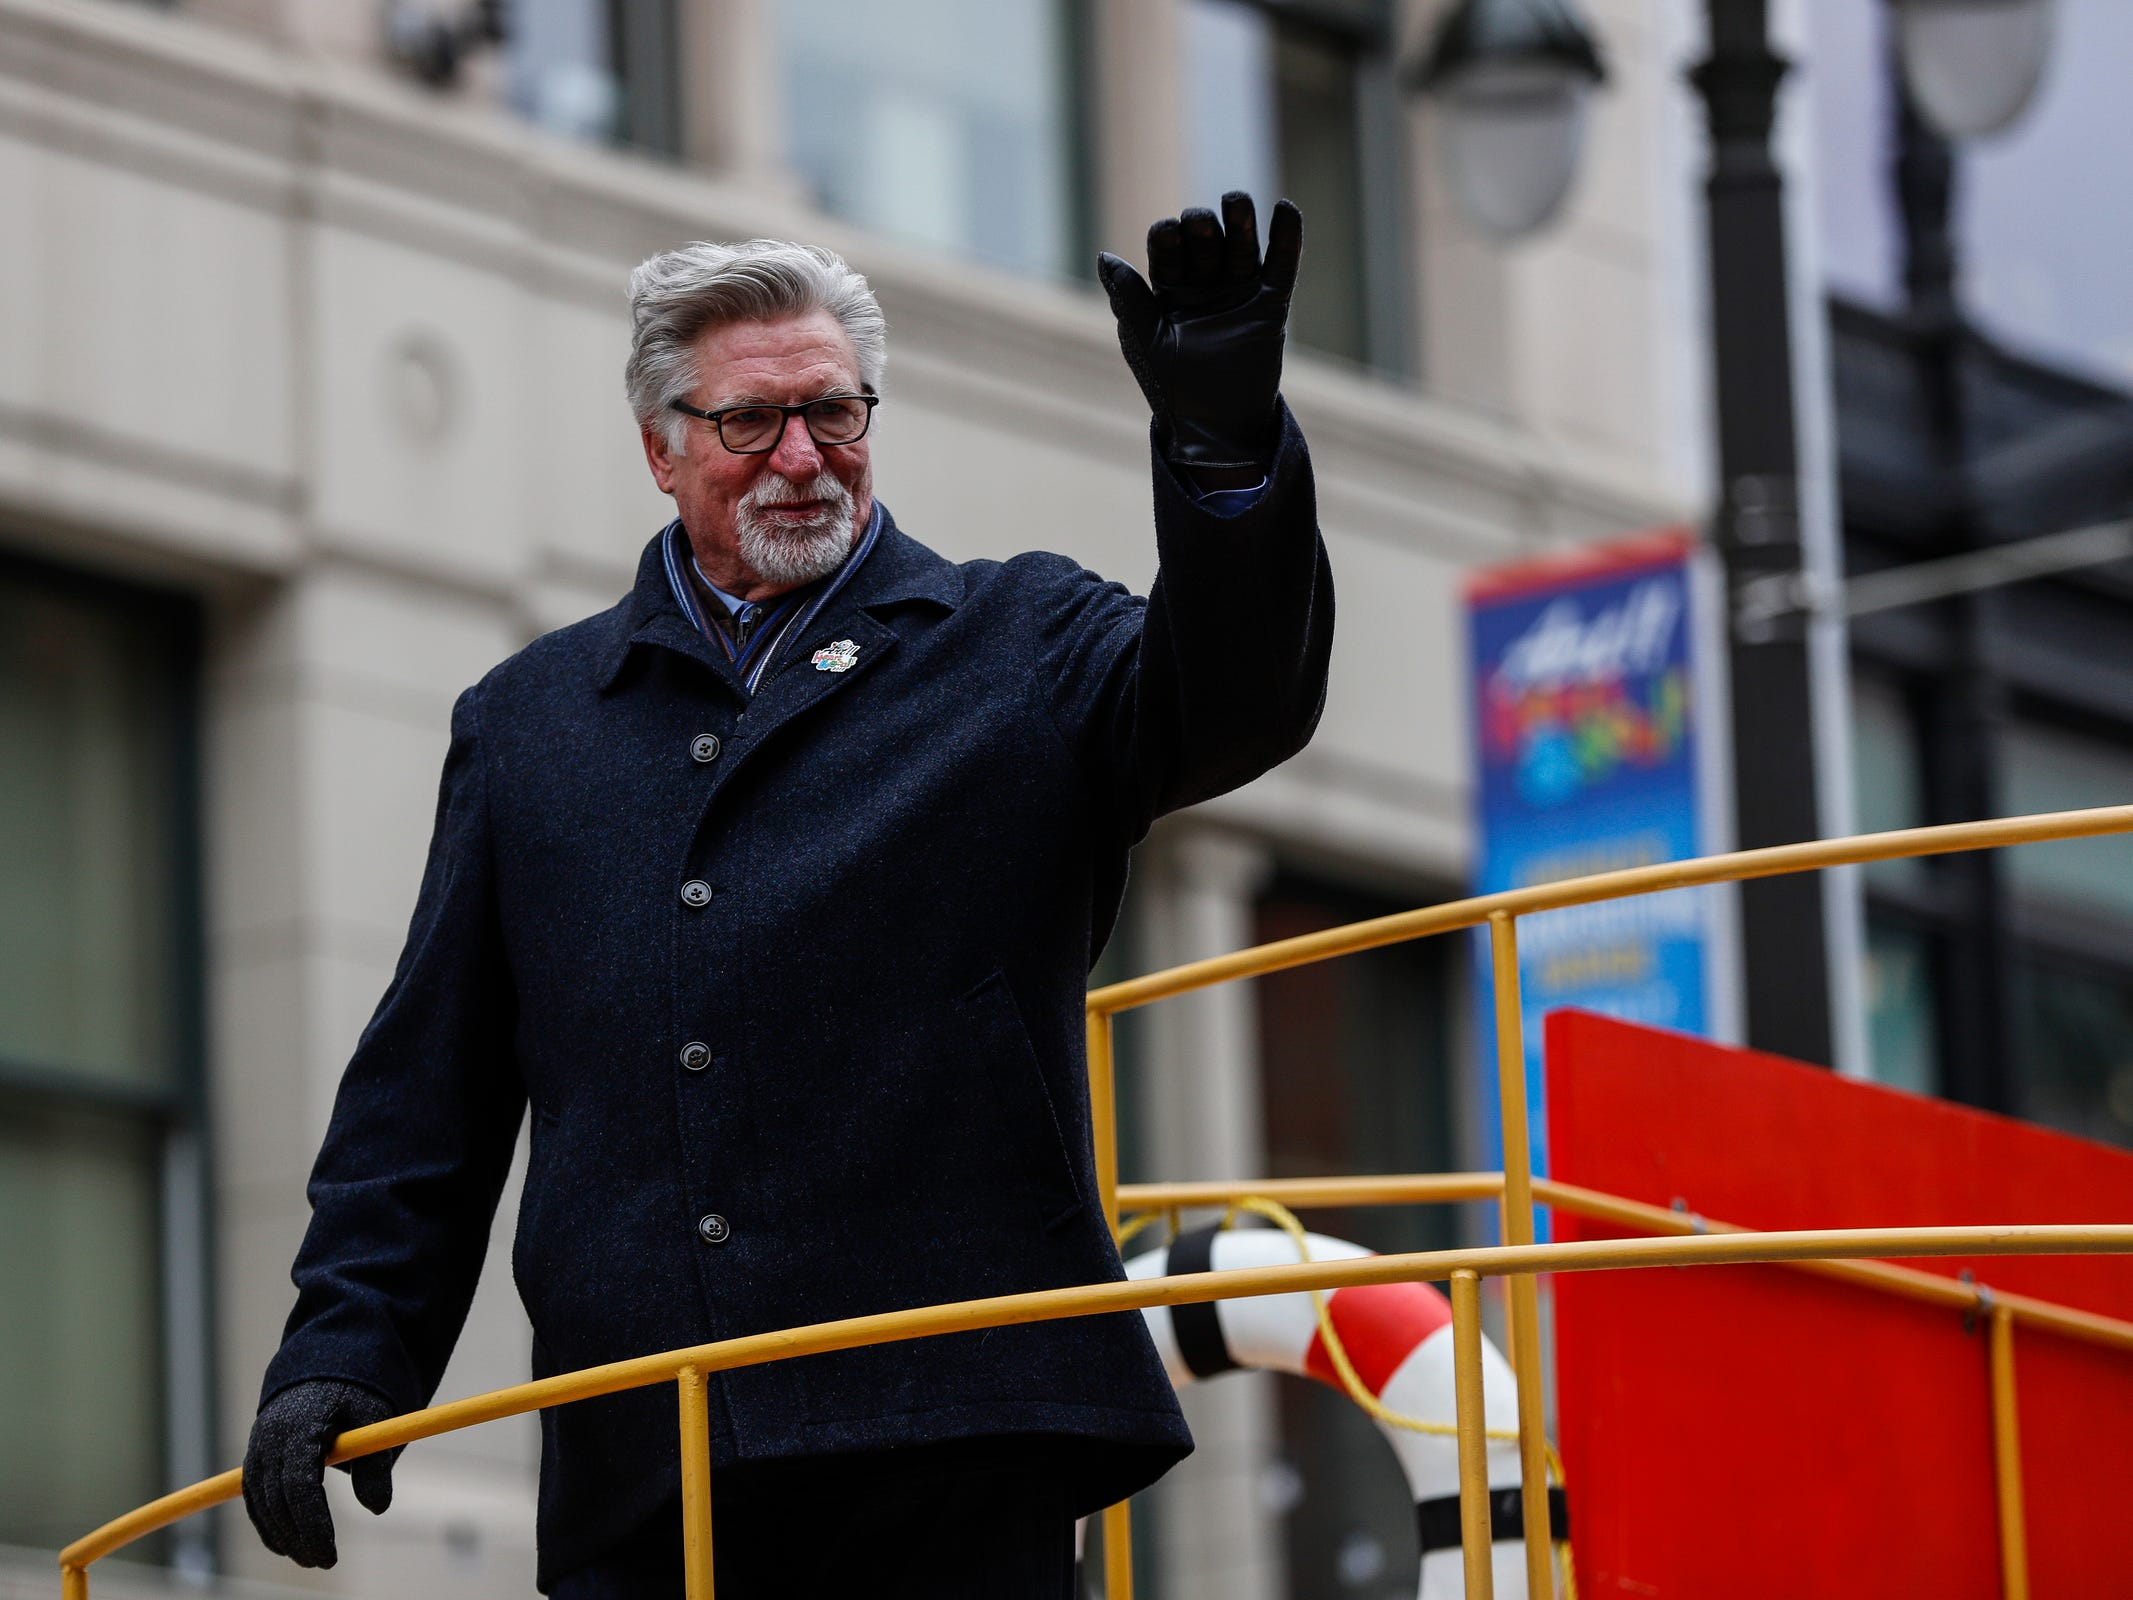 Former Detroit Tigers pitcher Jack Morris waves at the crowd along Woodward Avenue during the 92nd America's Thanksgiving Day Parade in Detroit, Thursday, Nov. 22, 2018.